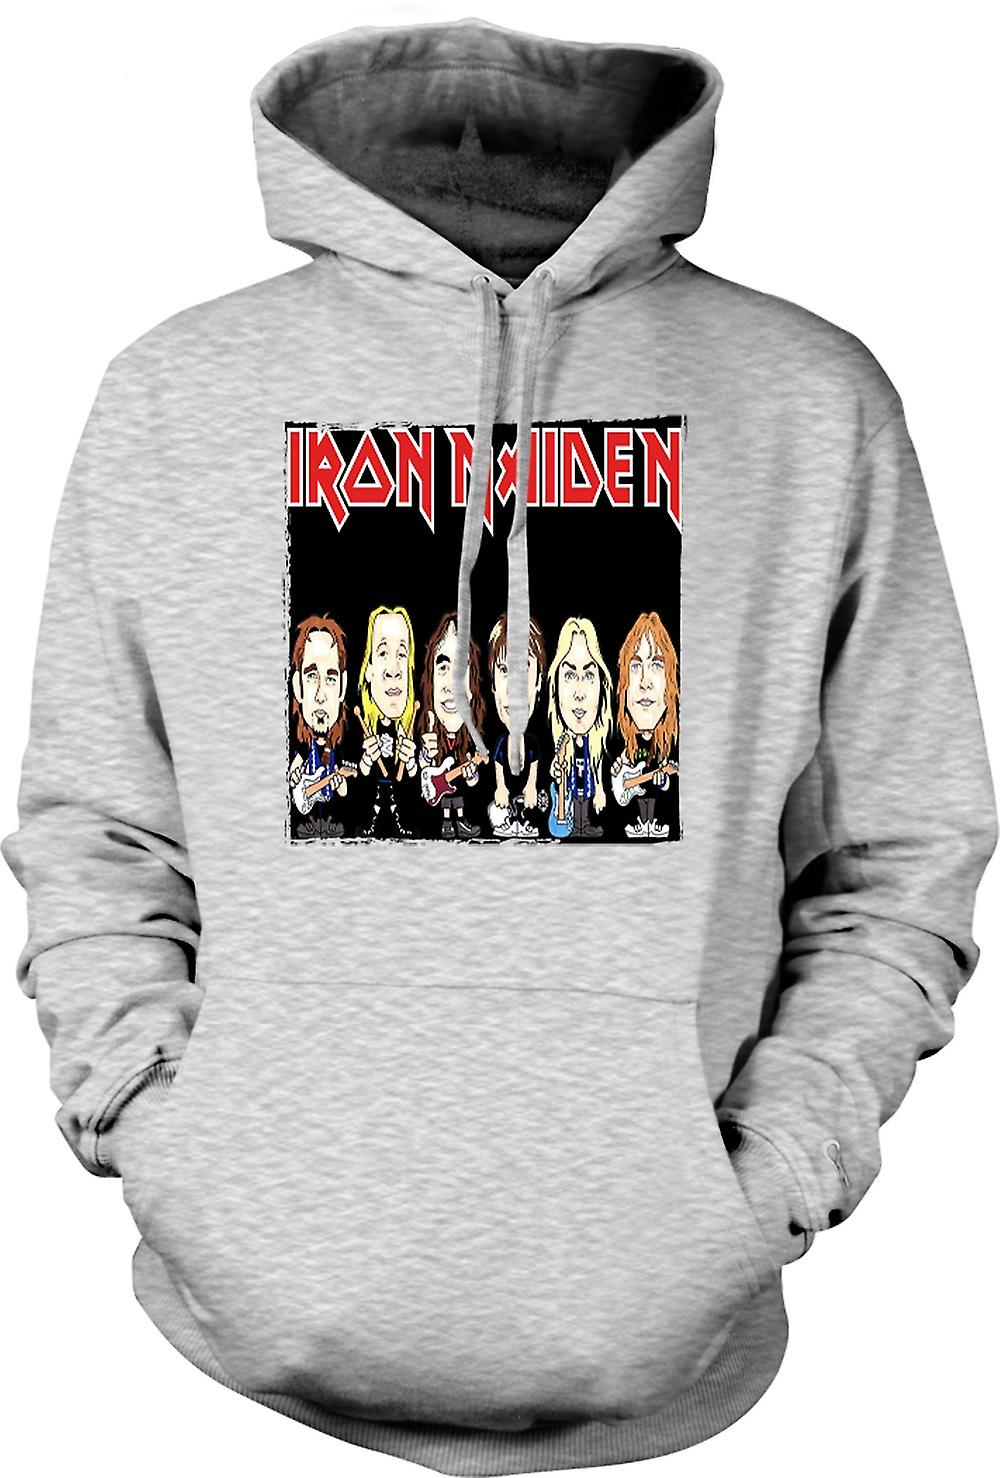 Mens Hoodie - Iron Maiden - Cartoon Band